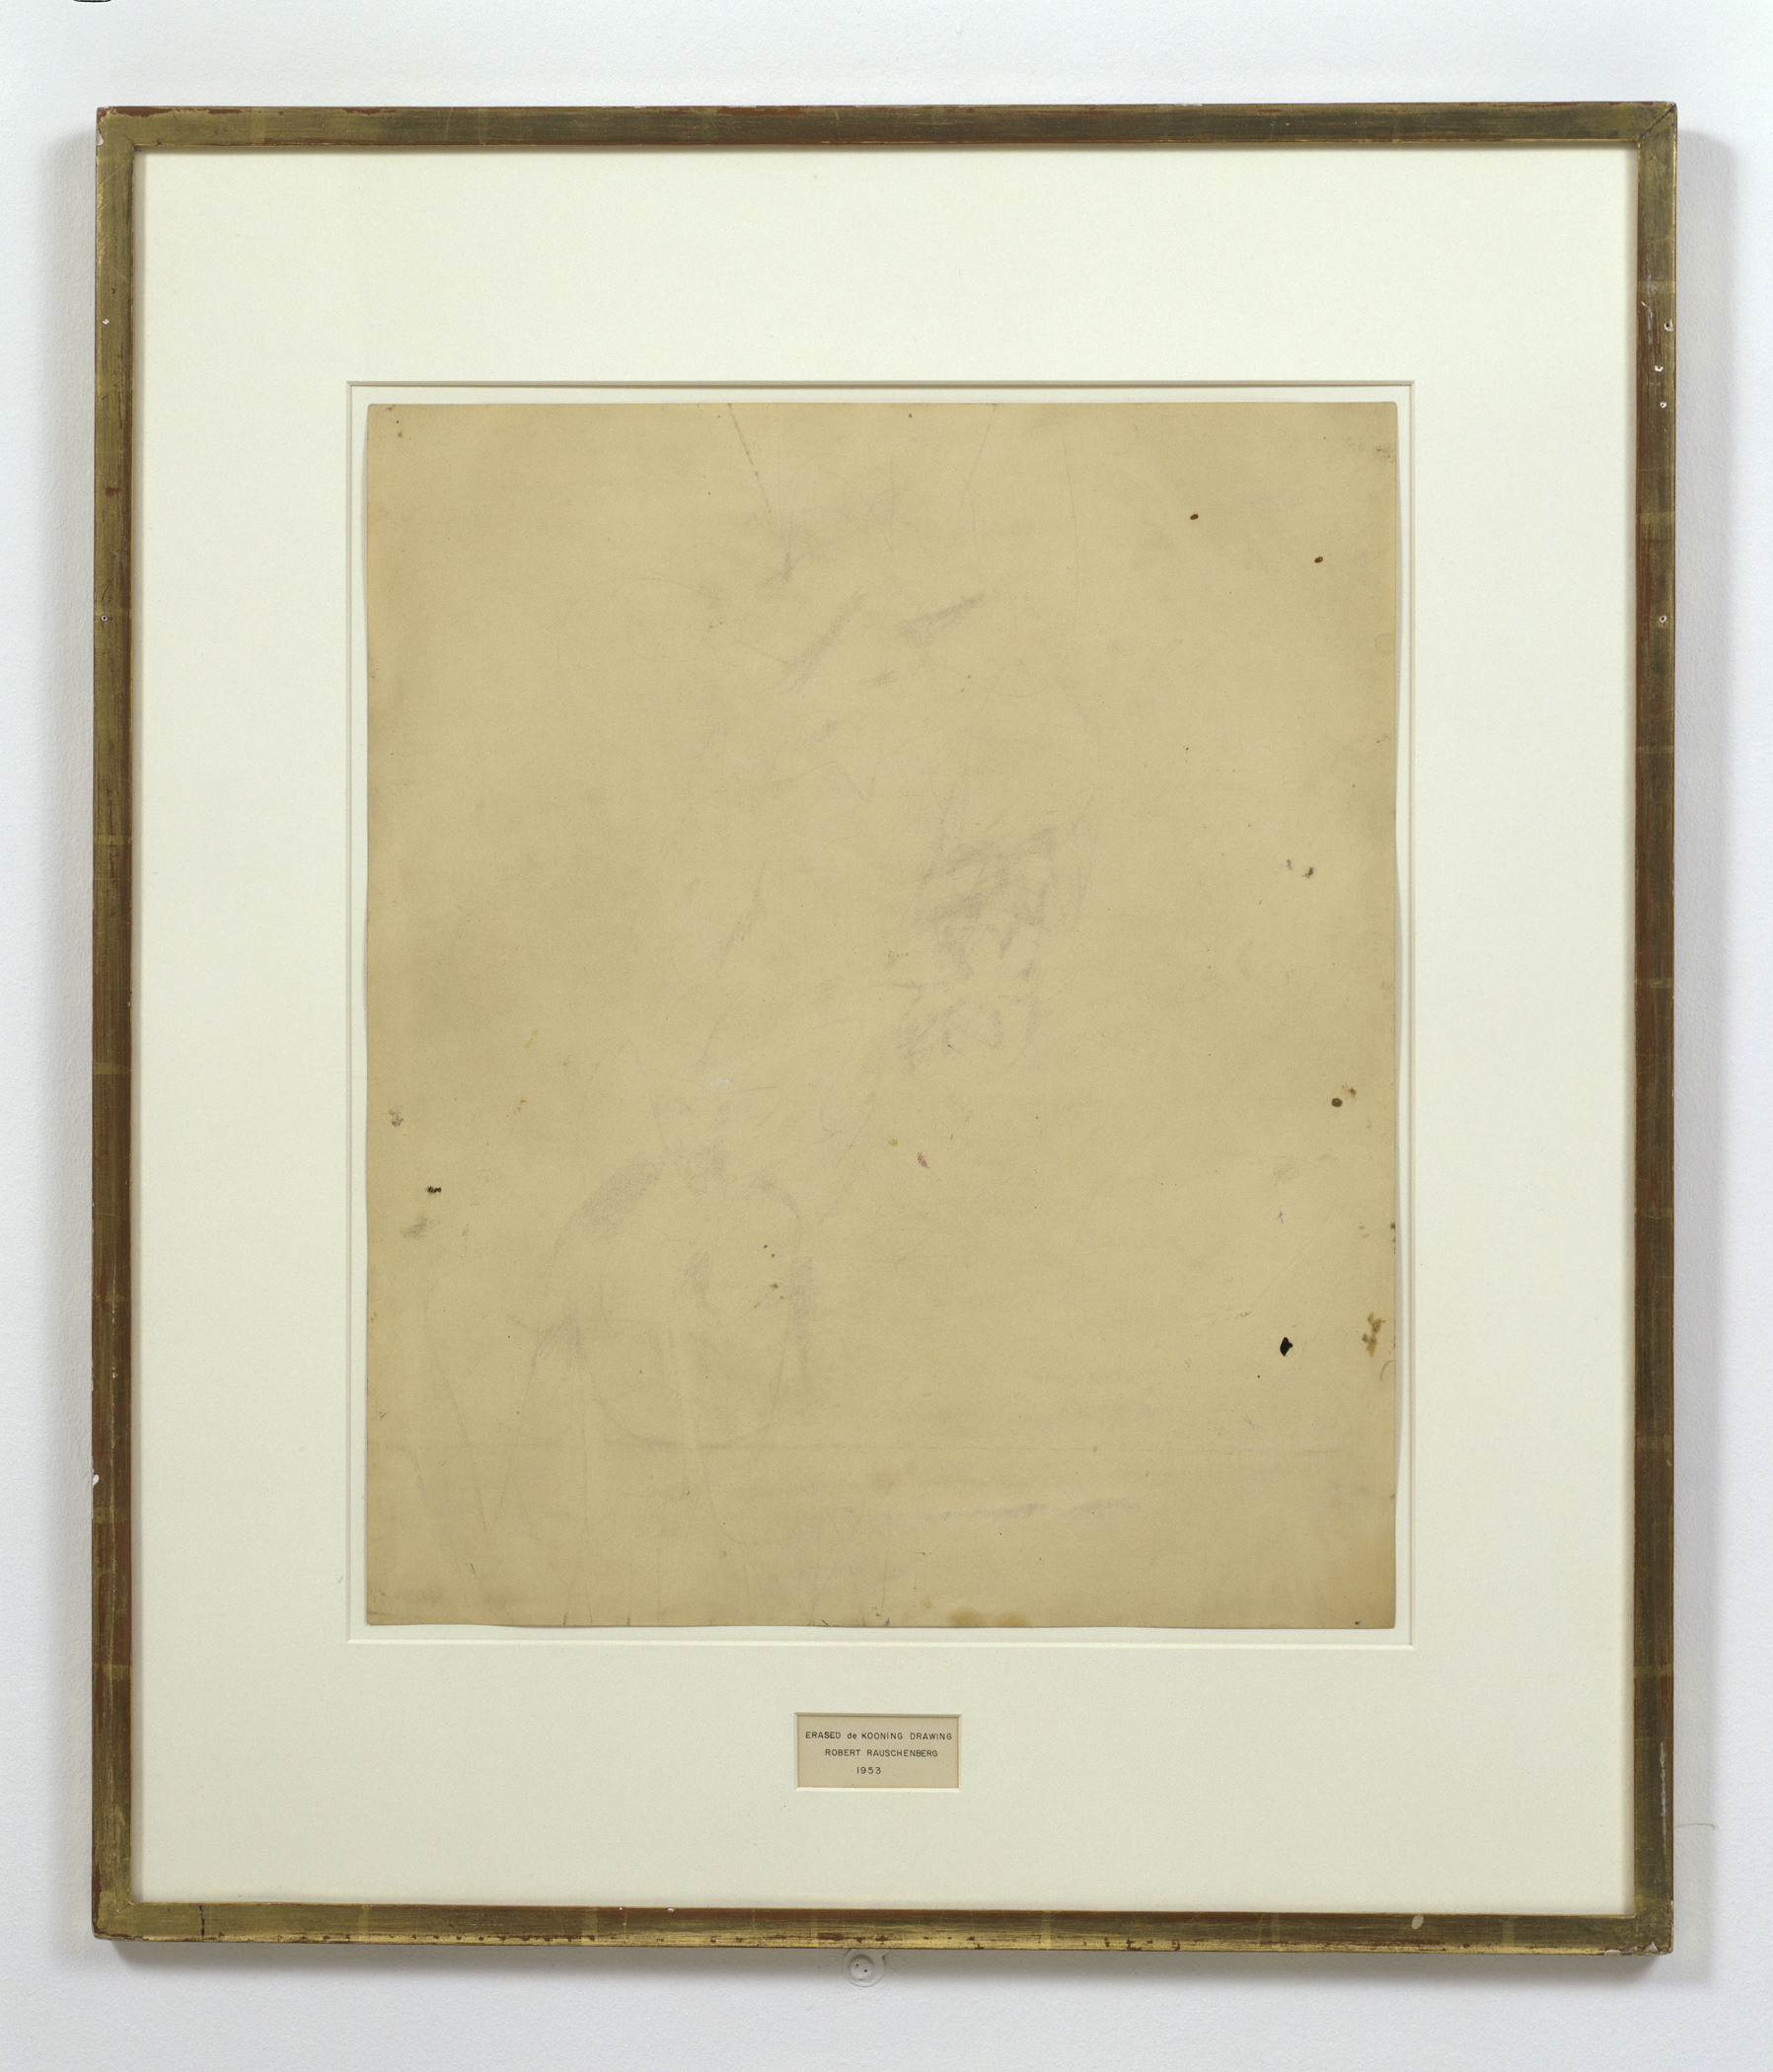 Erased De Kooning Drawing - Robert Rauschenberg - 1953